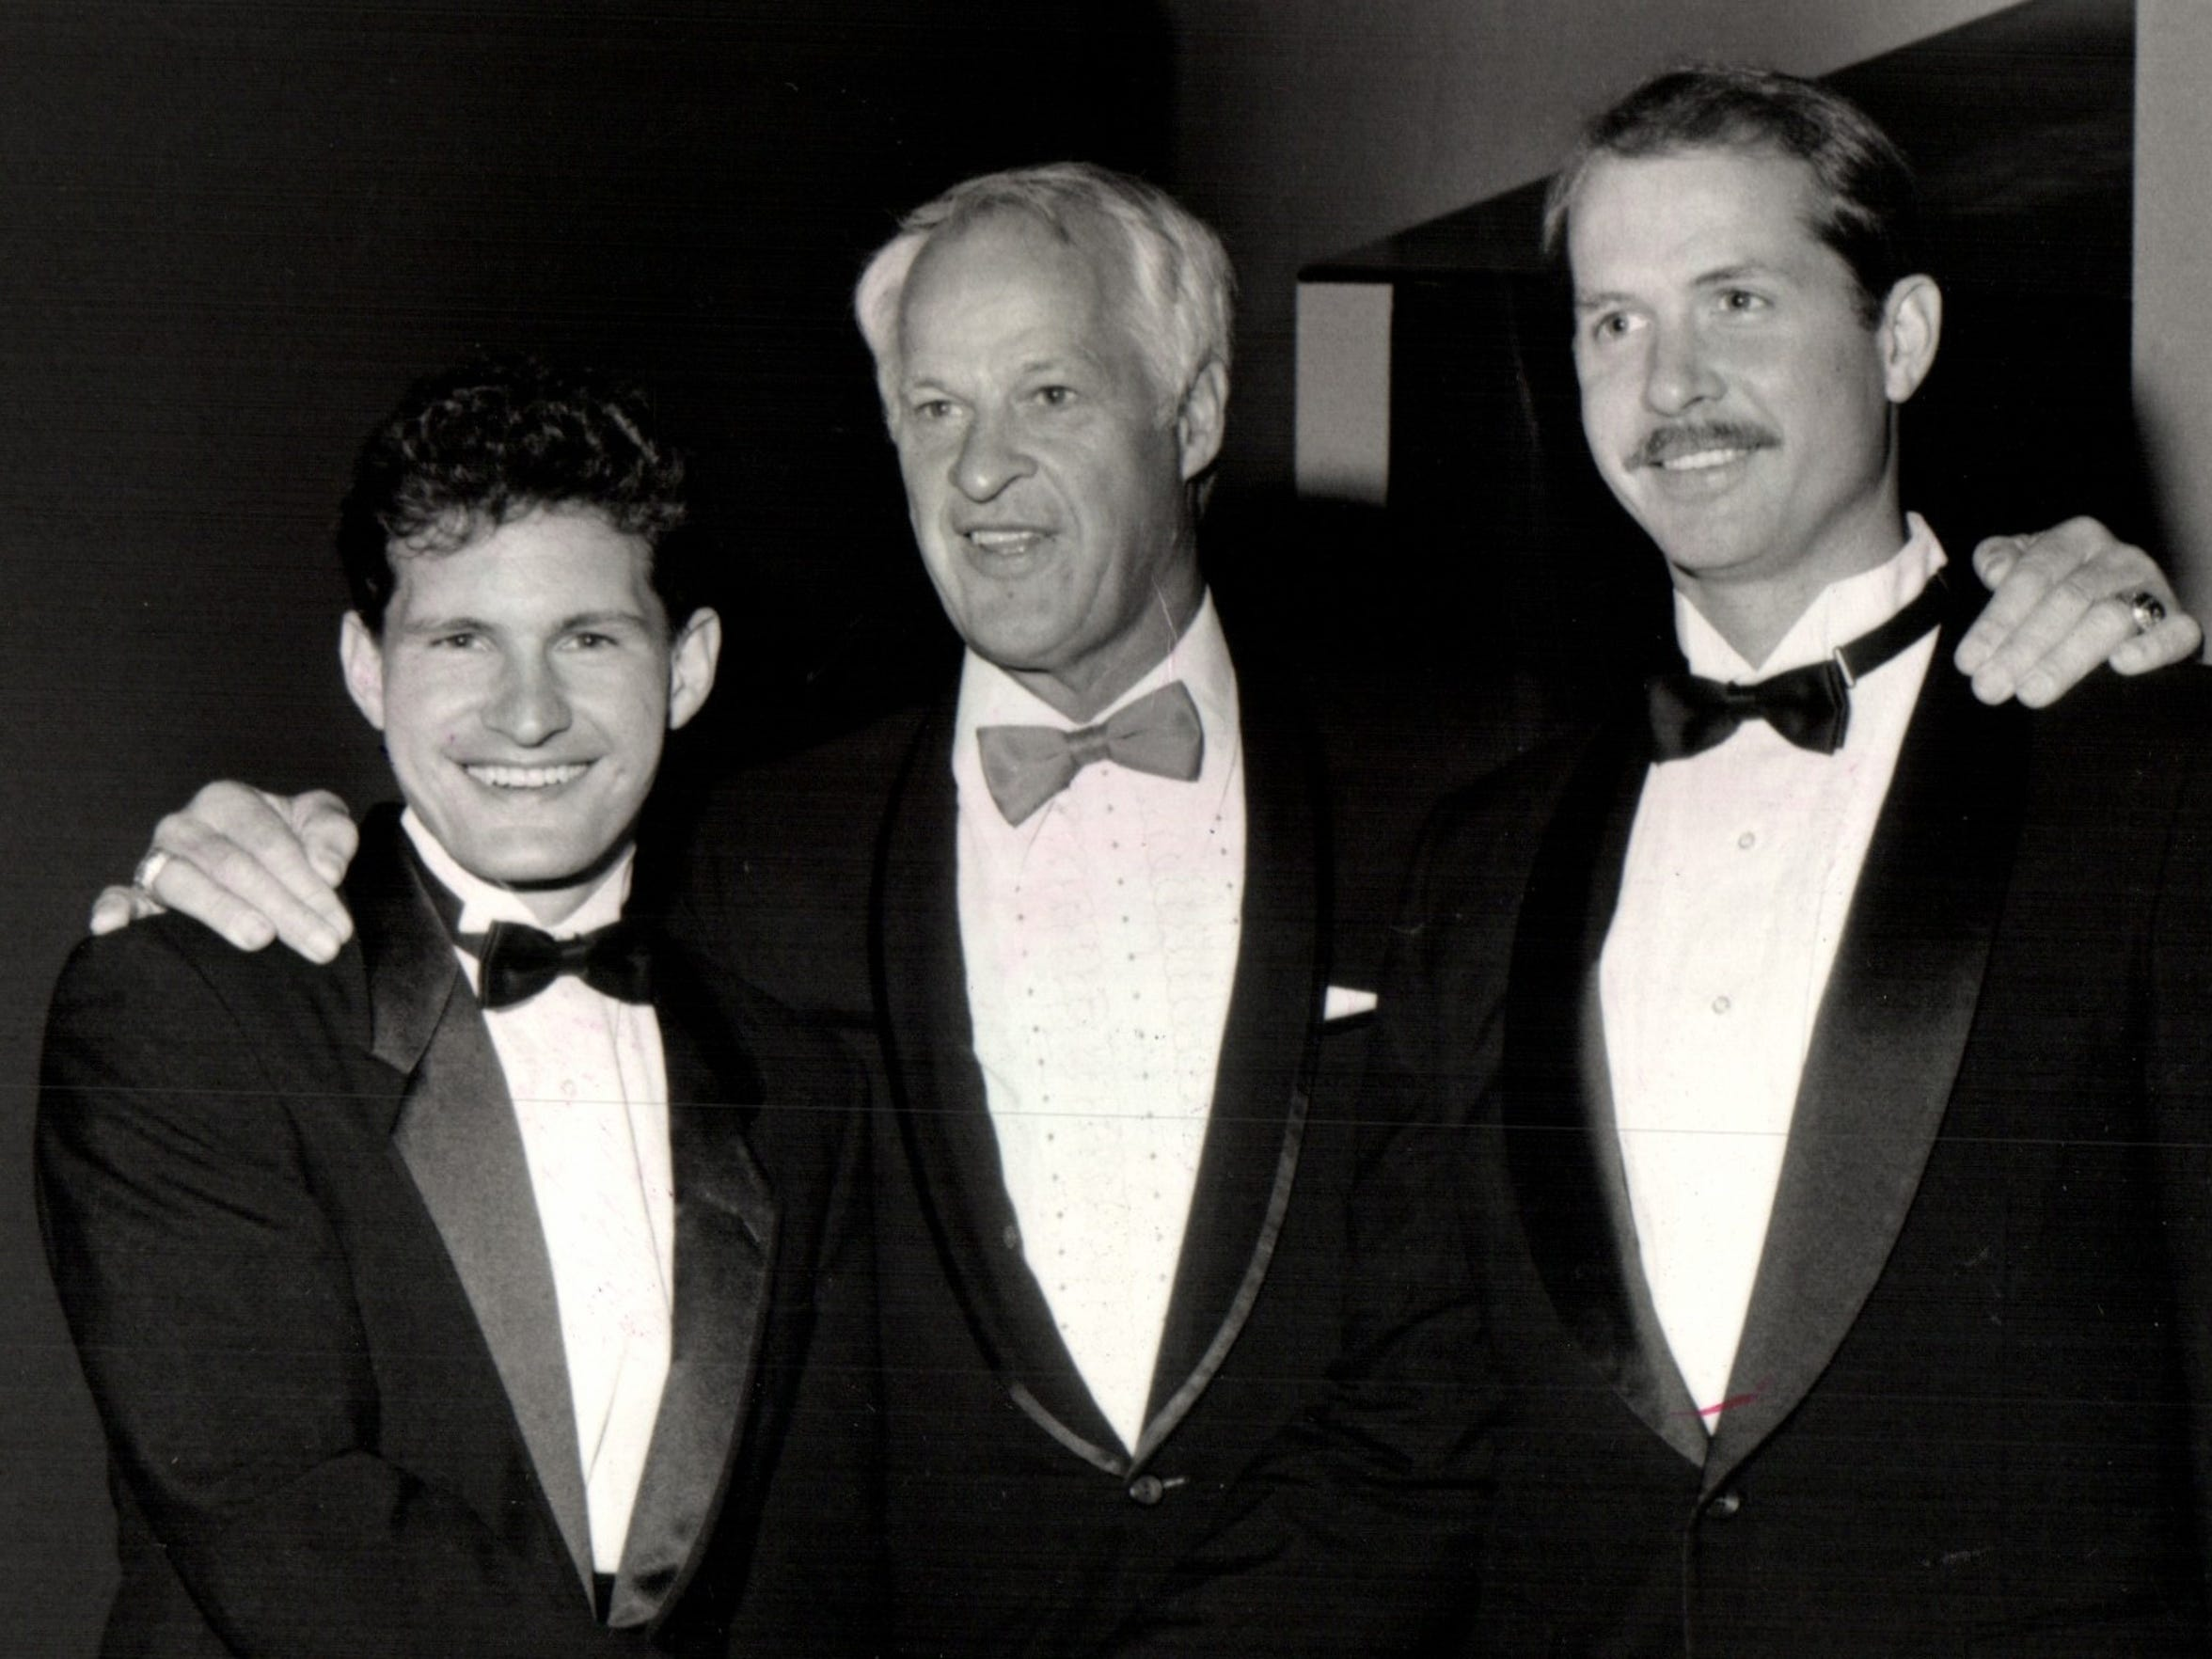 Gordie Howe and his sons, Murray and Marty.